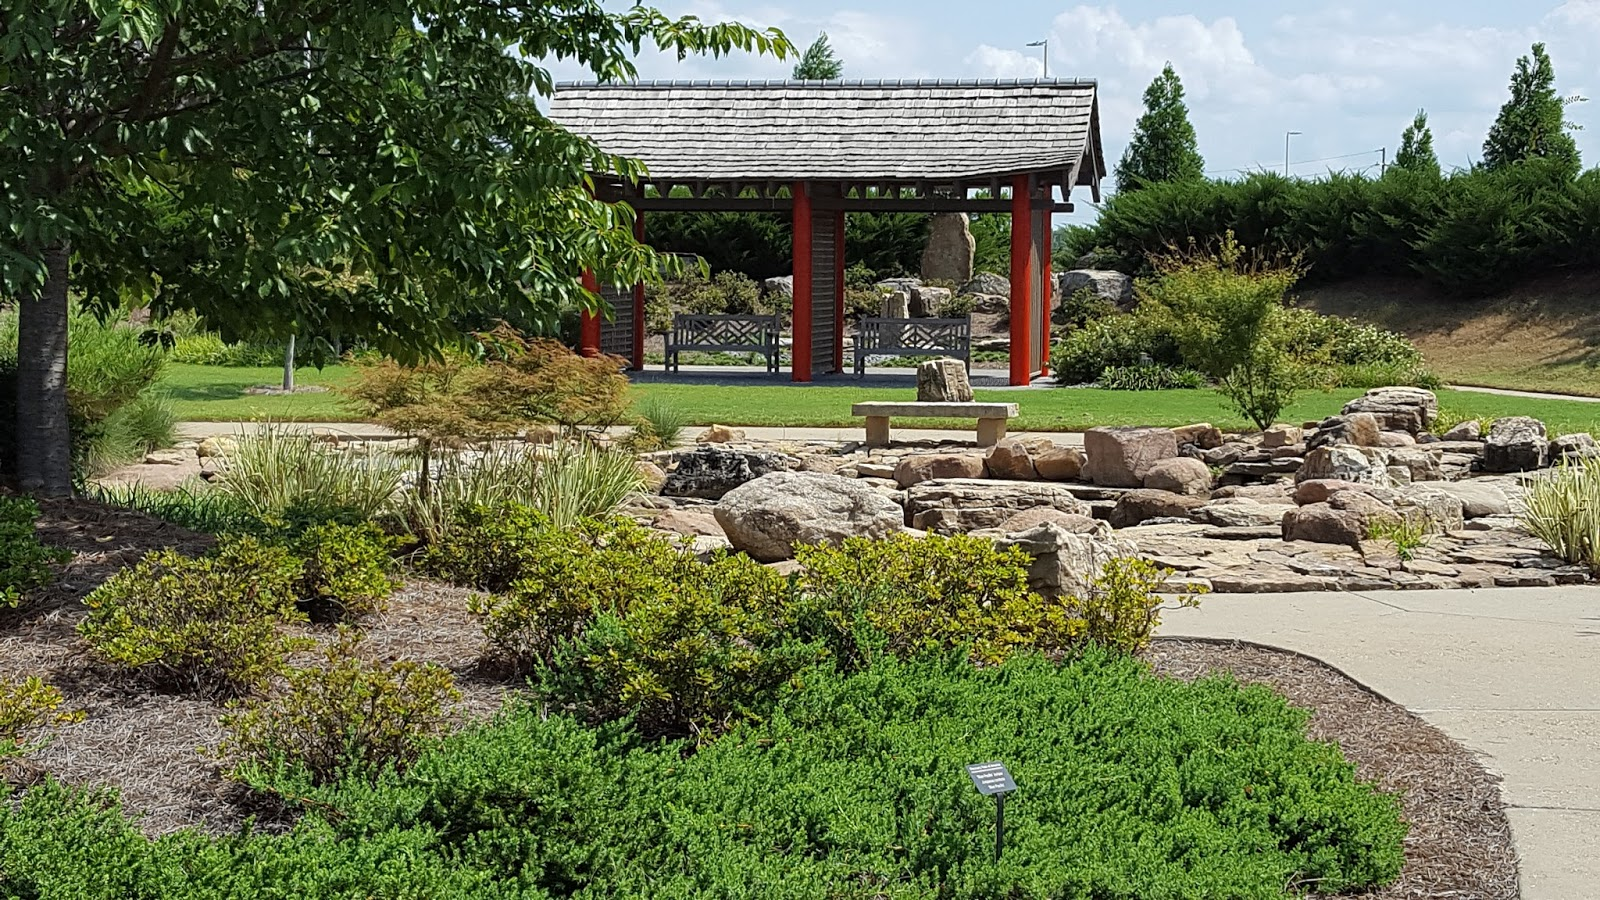 Delightful In Addition To This Asian Garden Area, The Discovery Park Also Has A  European Garden Area, Which Contains Many Of The Flowering Plants And Herbs  That Many ...